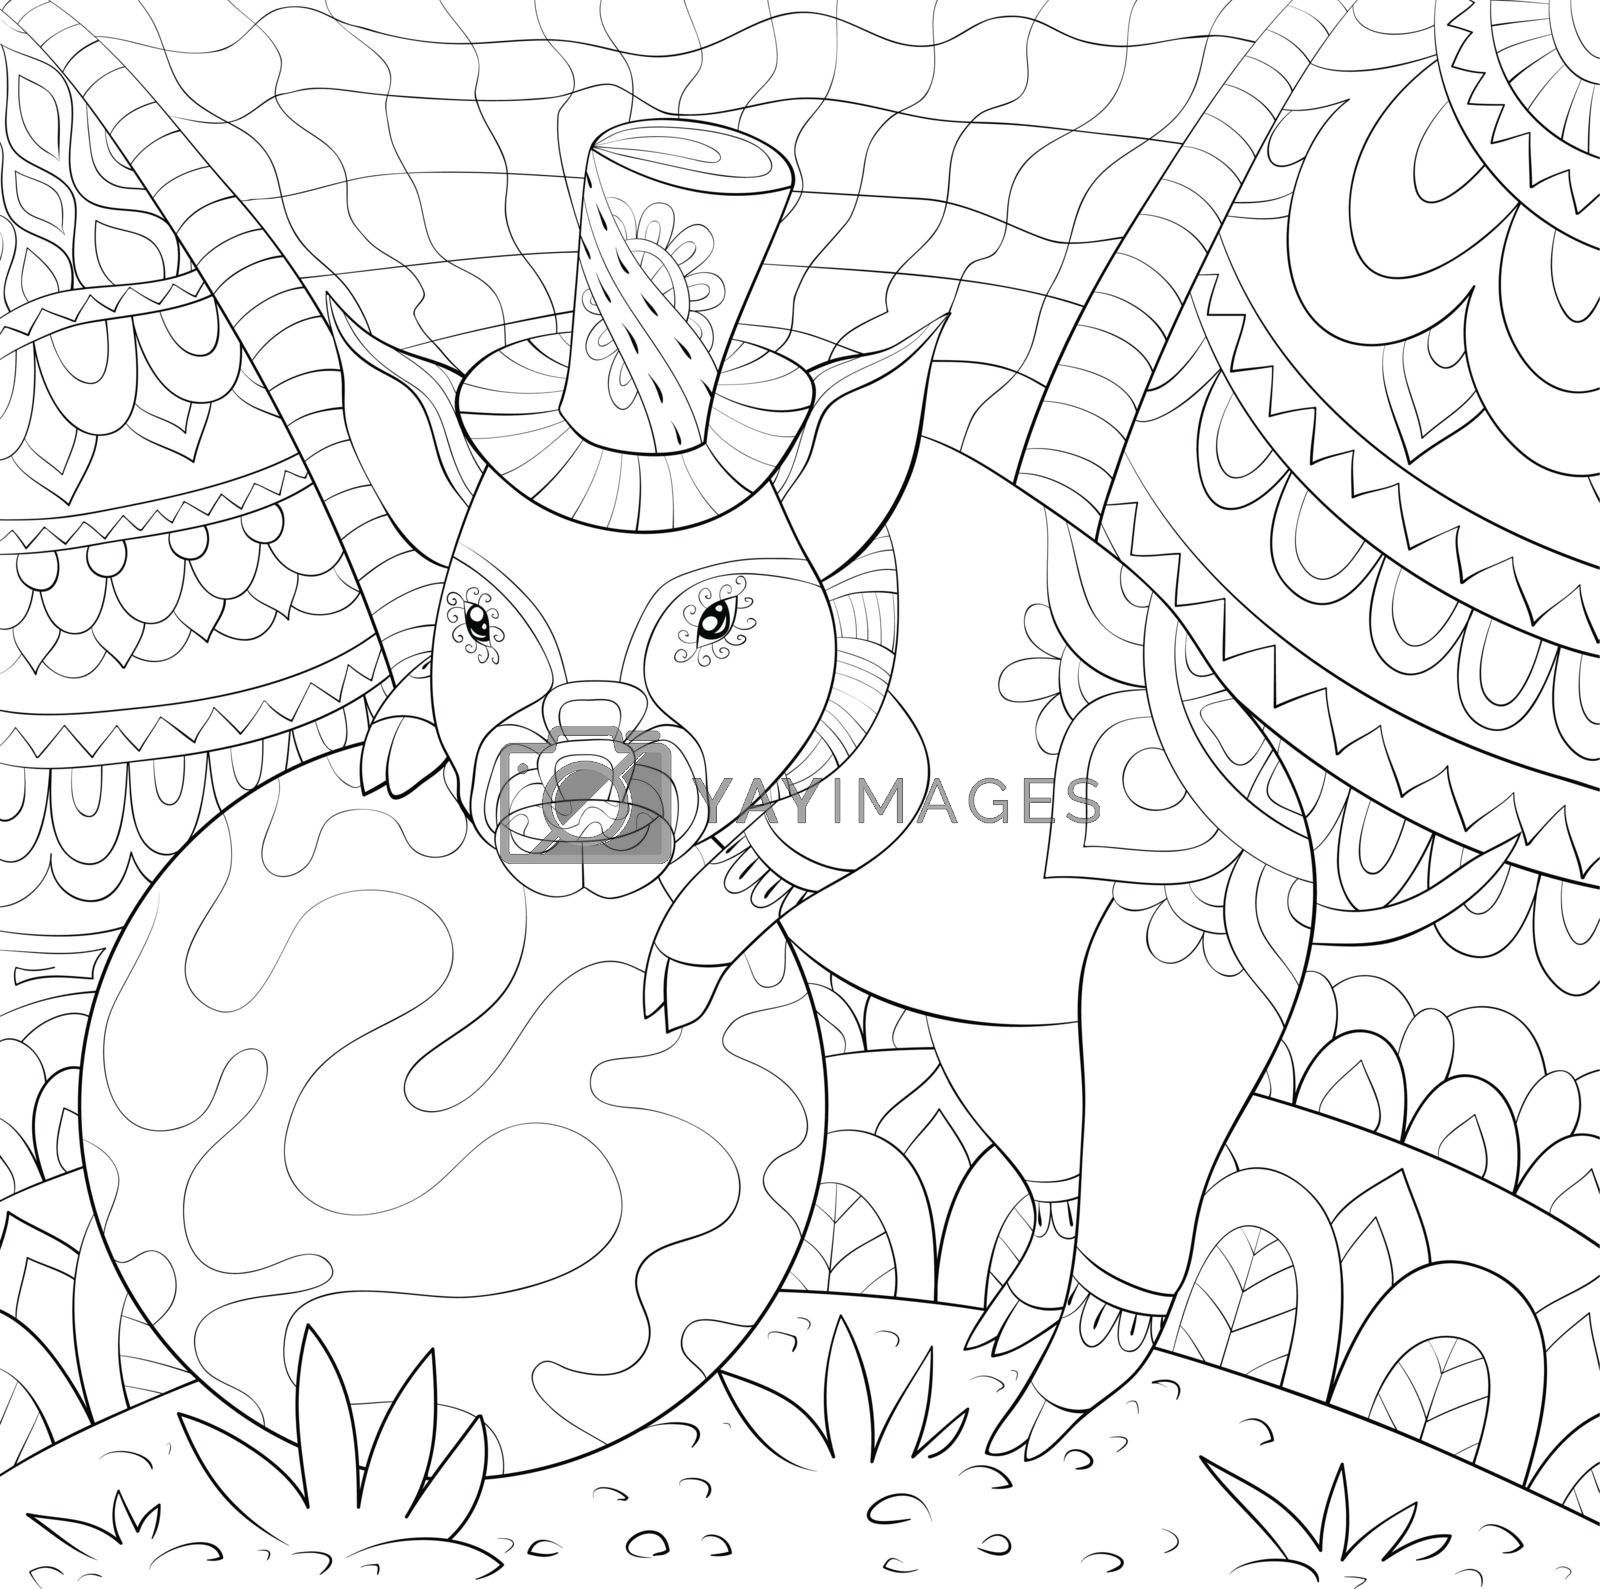 Adult coloring book,page a cute pig wearing a hat near a ball on by Nonuzza